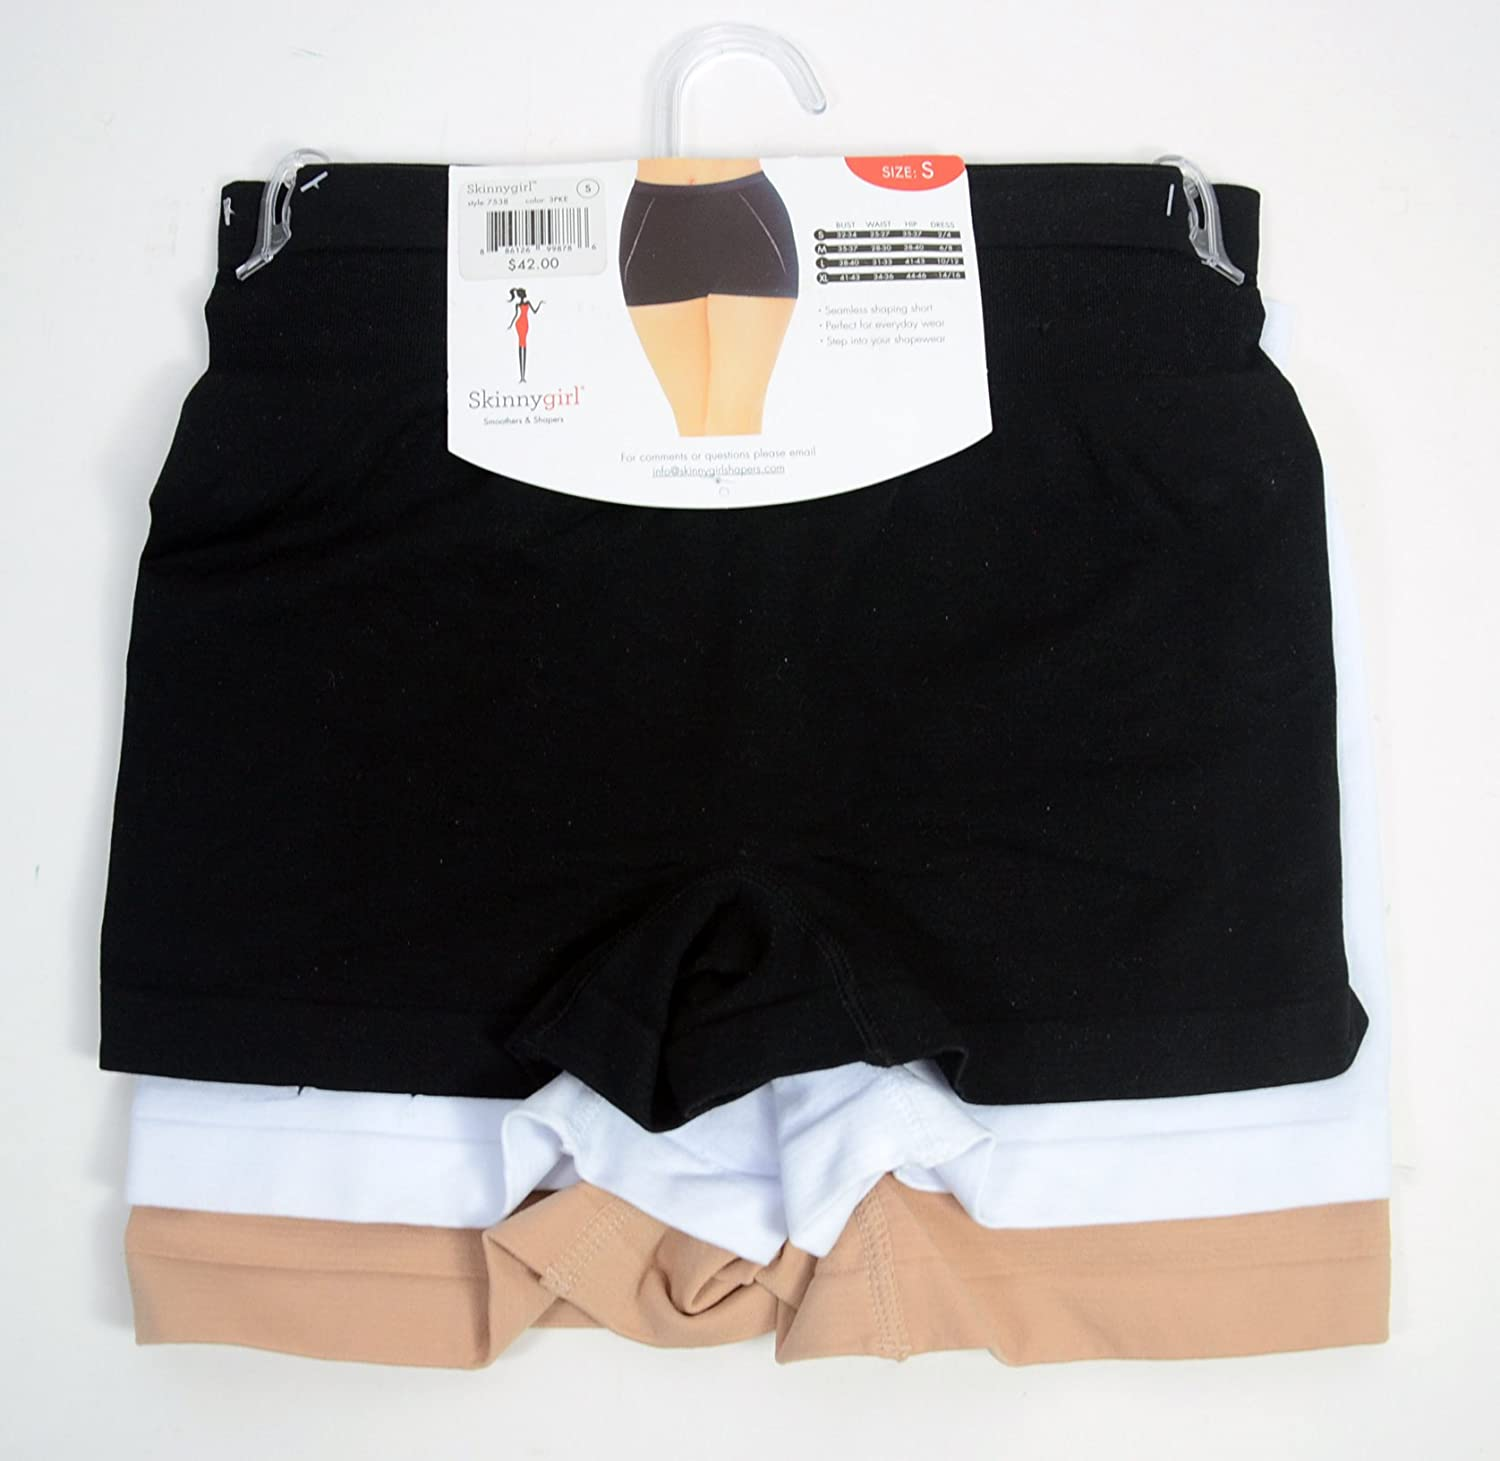 3 Pack Small Skinnygirl by Bethenny Frankel Seamless Shaping Shorts Underwear Black//Nude//White